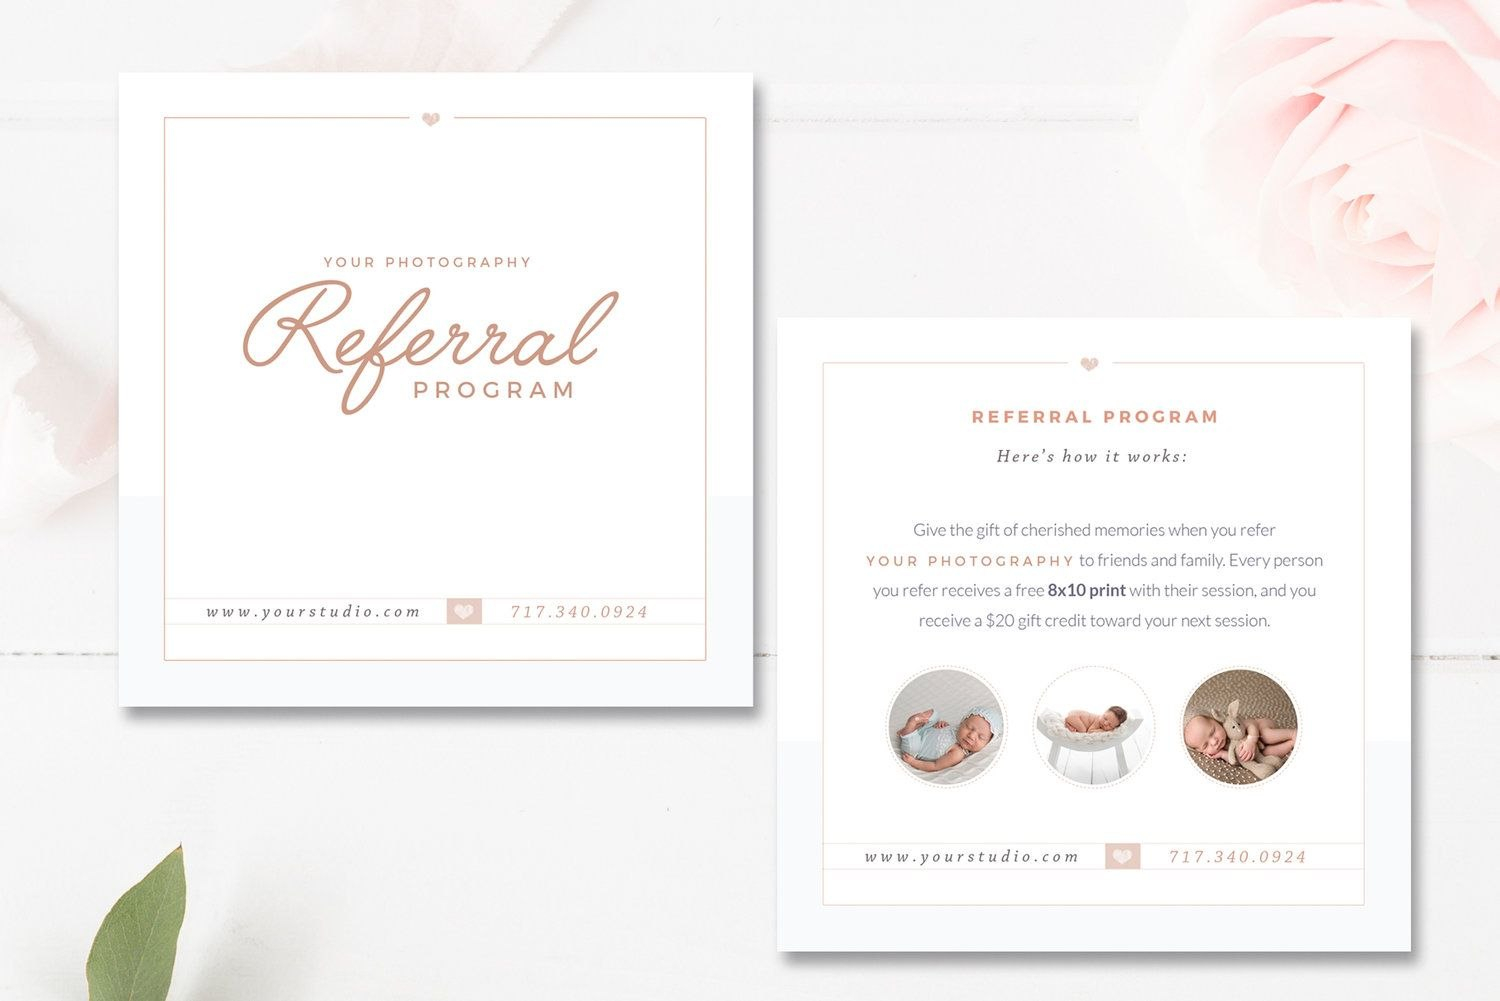 Photography Referral Card Templates Referral Program  Marketing With Photography Referral Card Templates